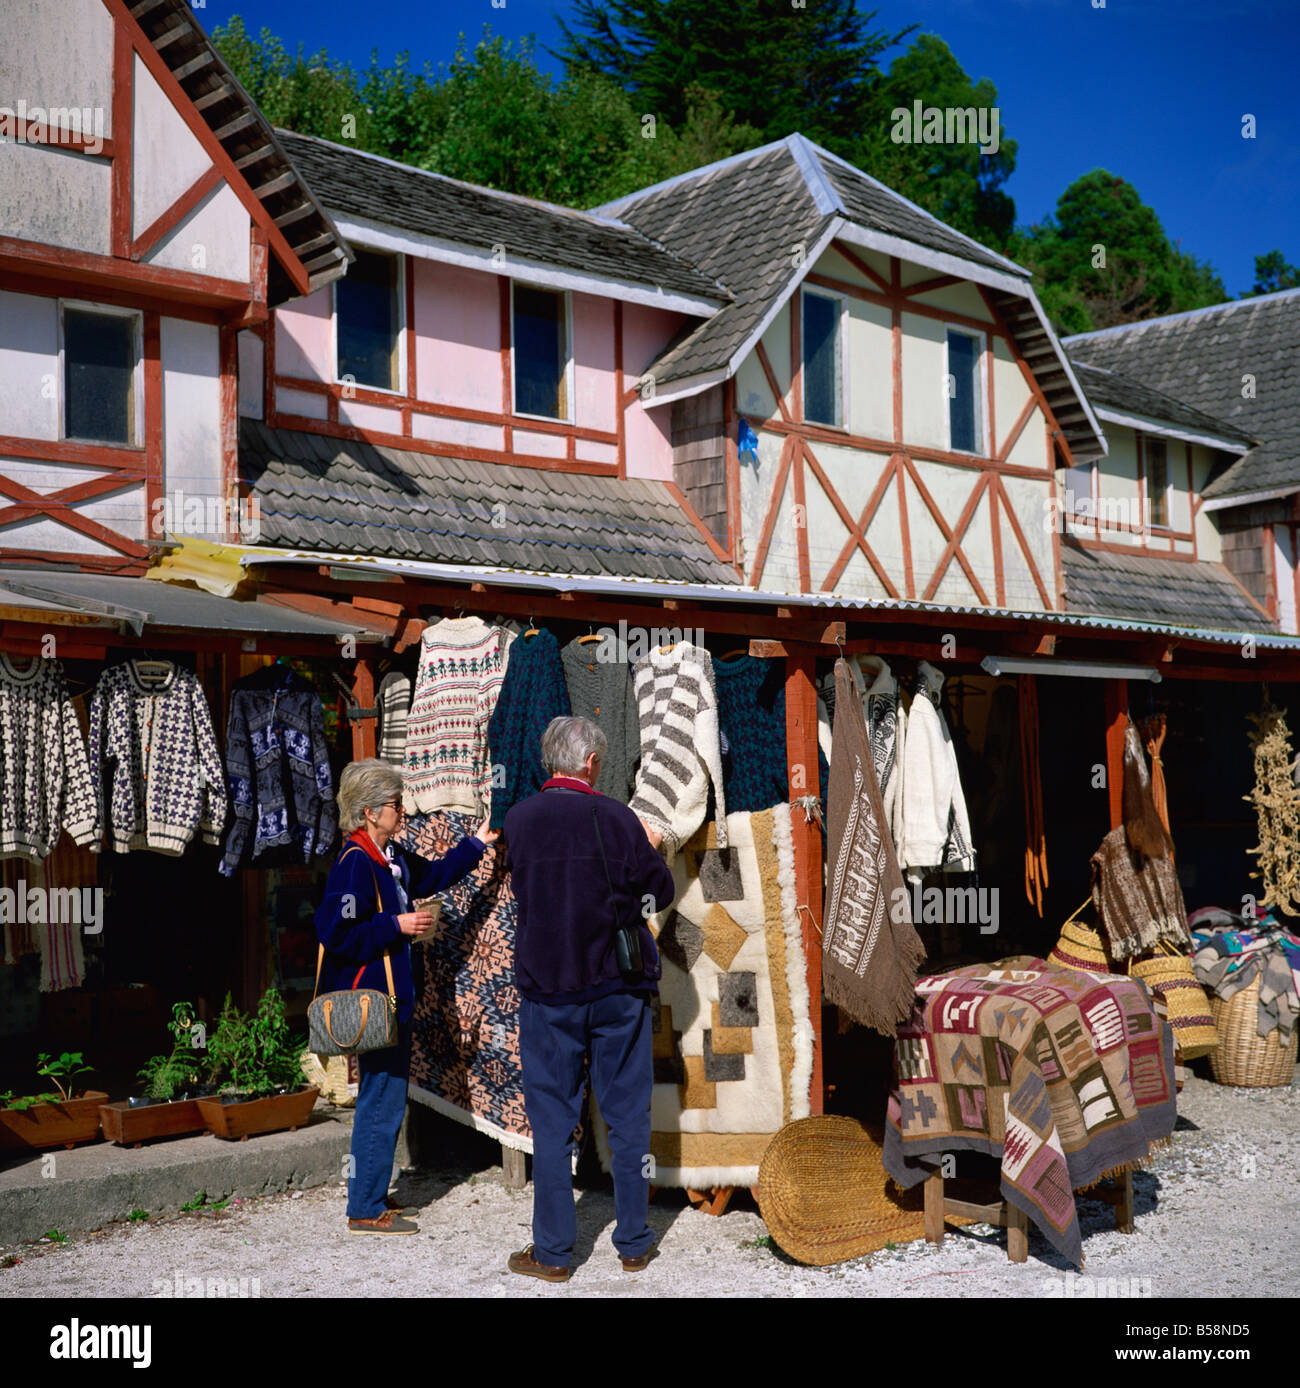 local craft shops local craft shop varas montt chile 2355